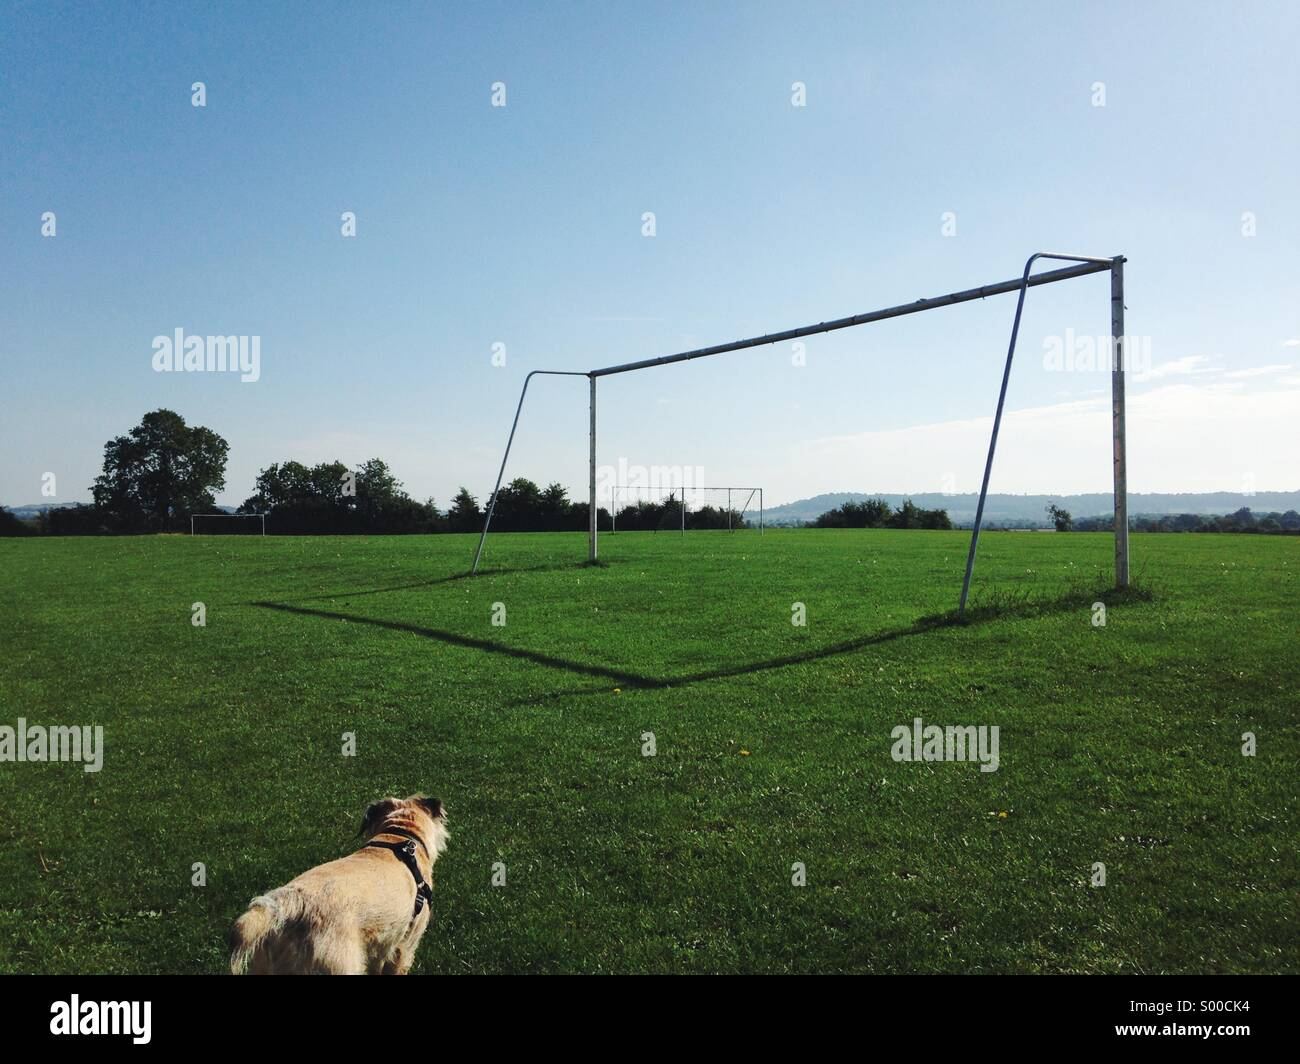 A dog walking amongst the goal posts on a sunny day. - Stock Image